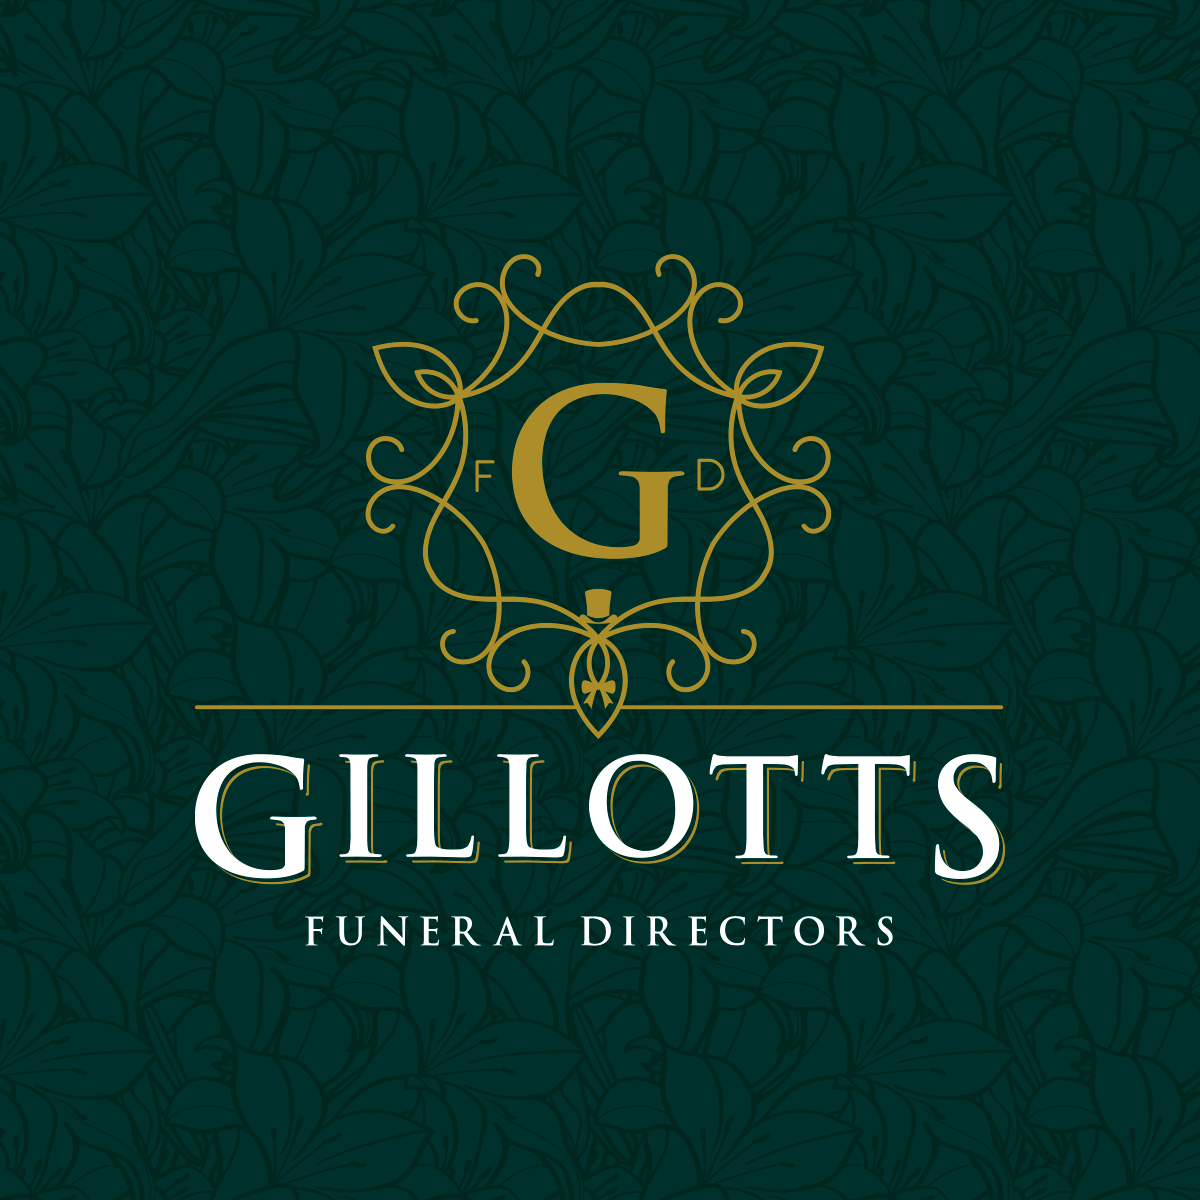 Identity for Gillotts Funeral Directors, green patterned background